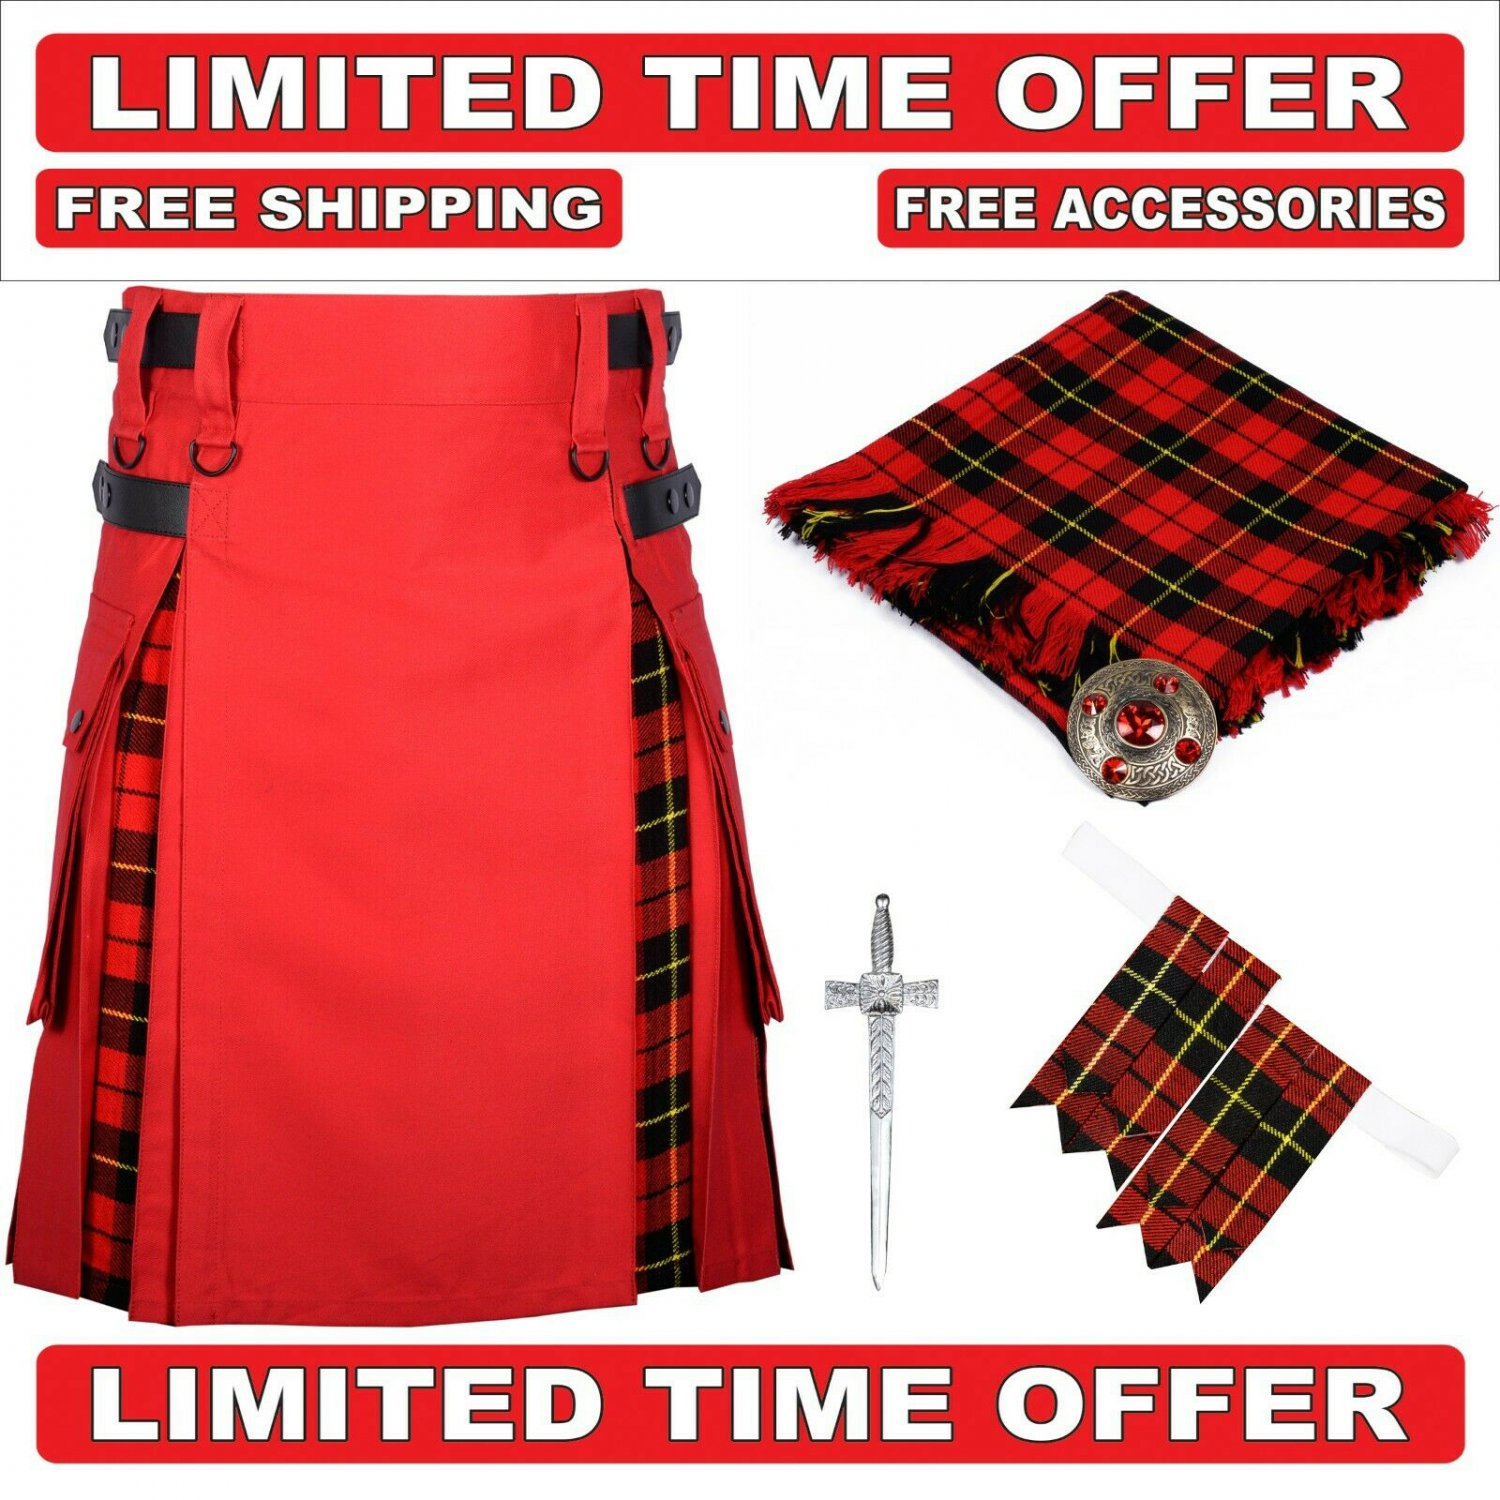 48 size red cotton Black Stewart Tartan Hybrid Utility Kilts For Men.Free Accessories & Shipping